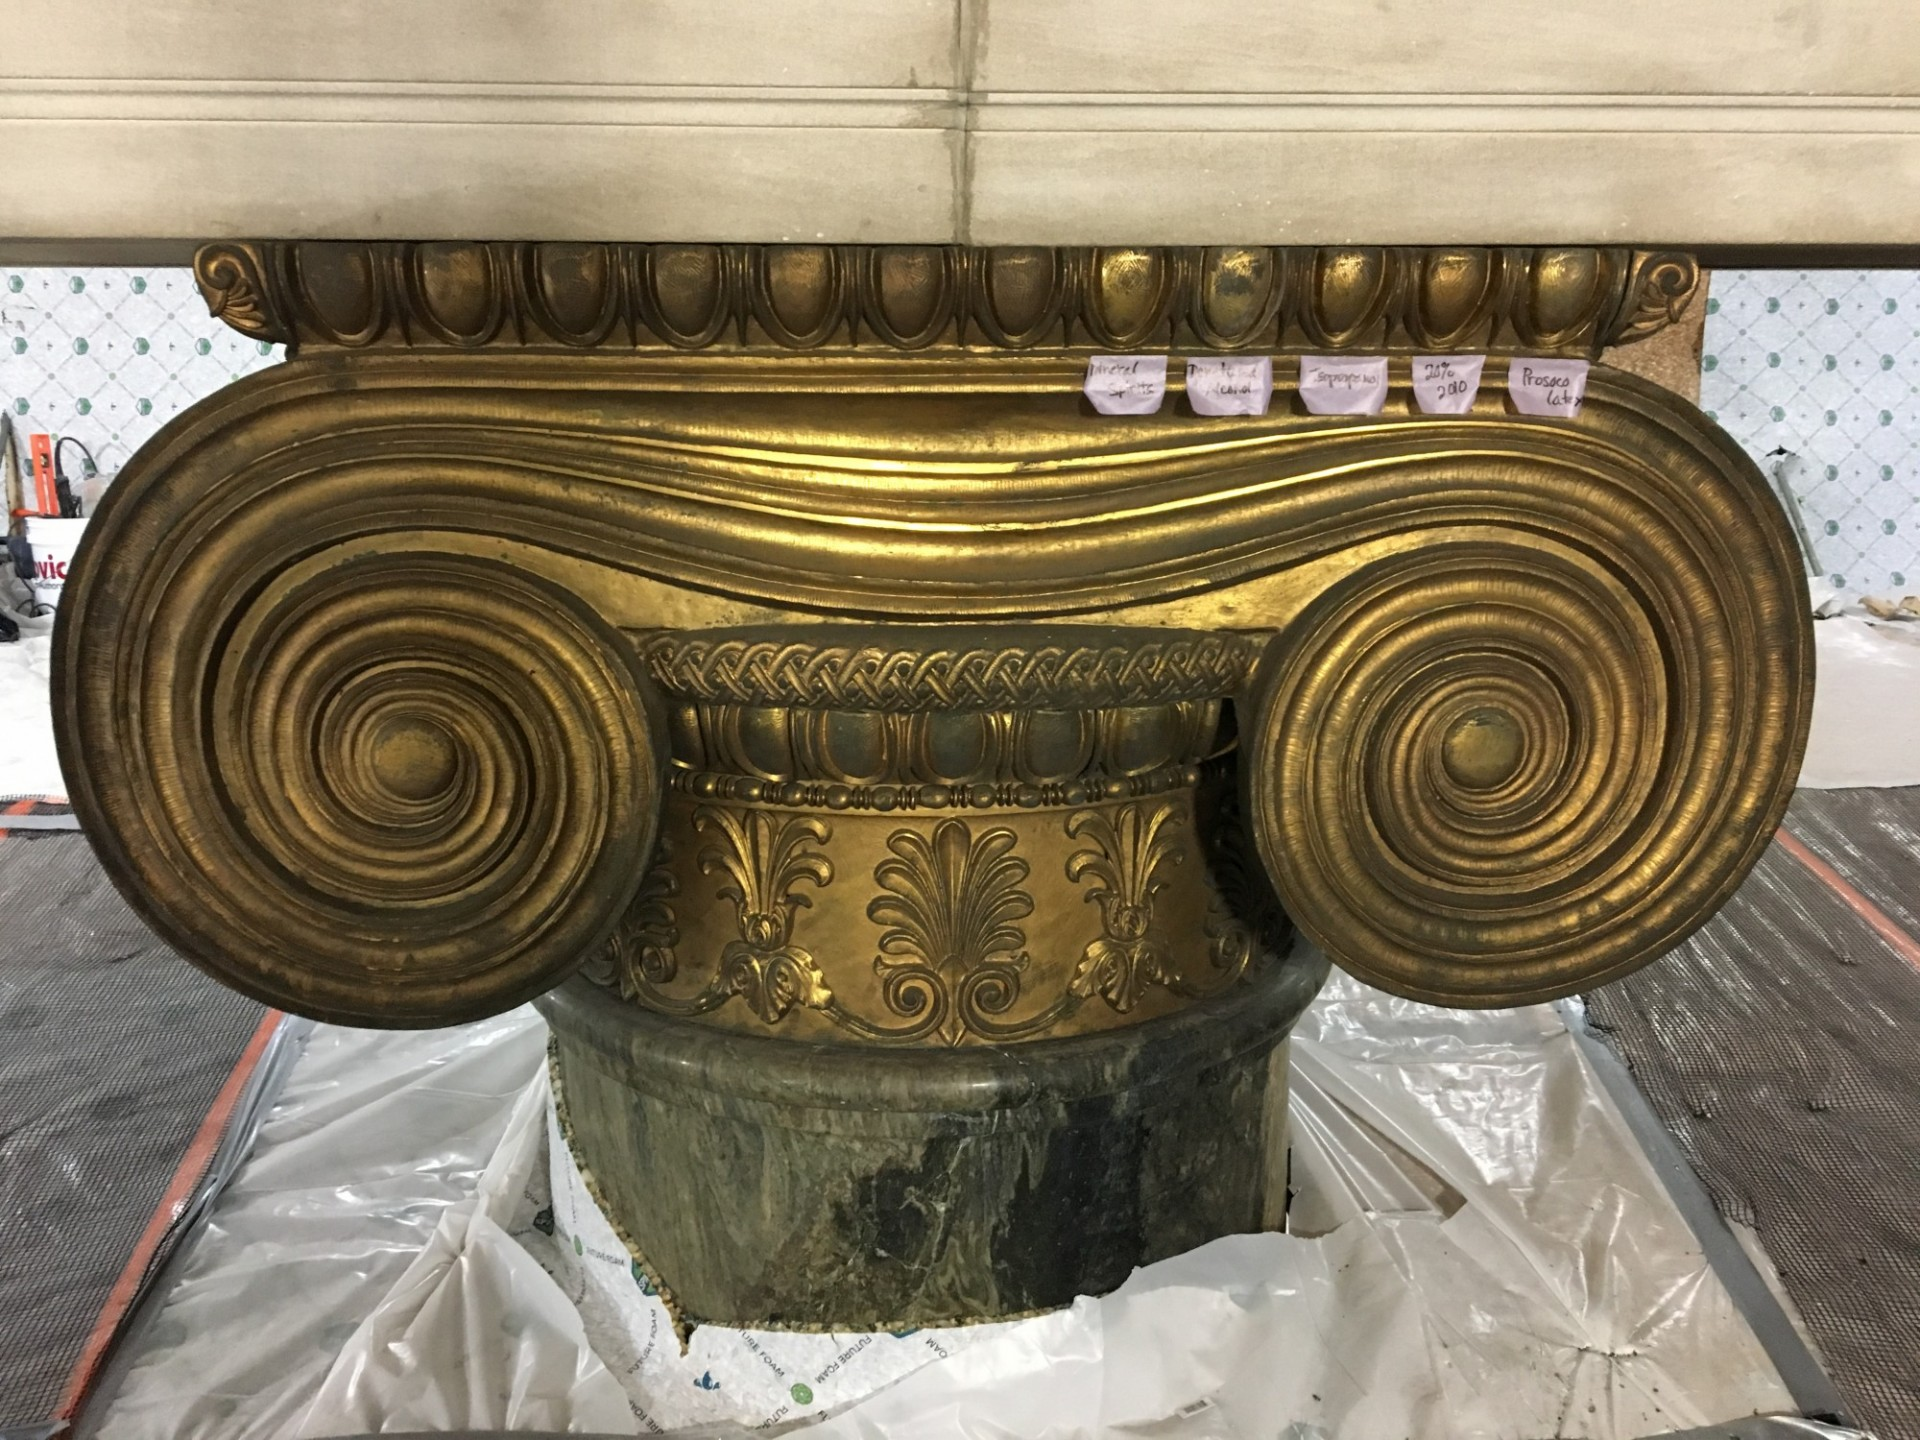 The historic preservation contractor tests multiple cleaning agents at the gilded bronze column capital to determine which one will most effectively restore the intended finish.